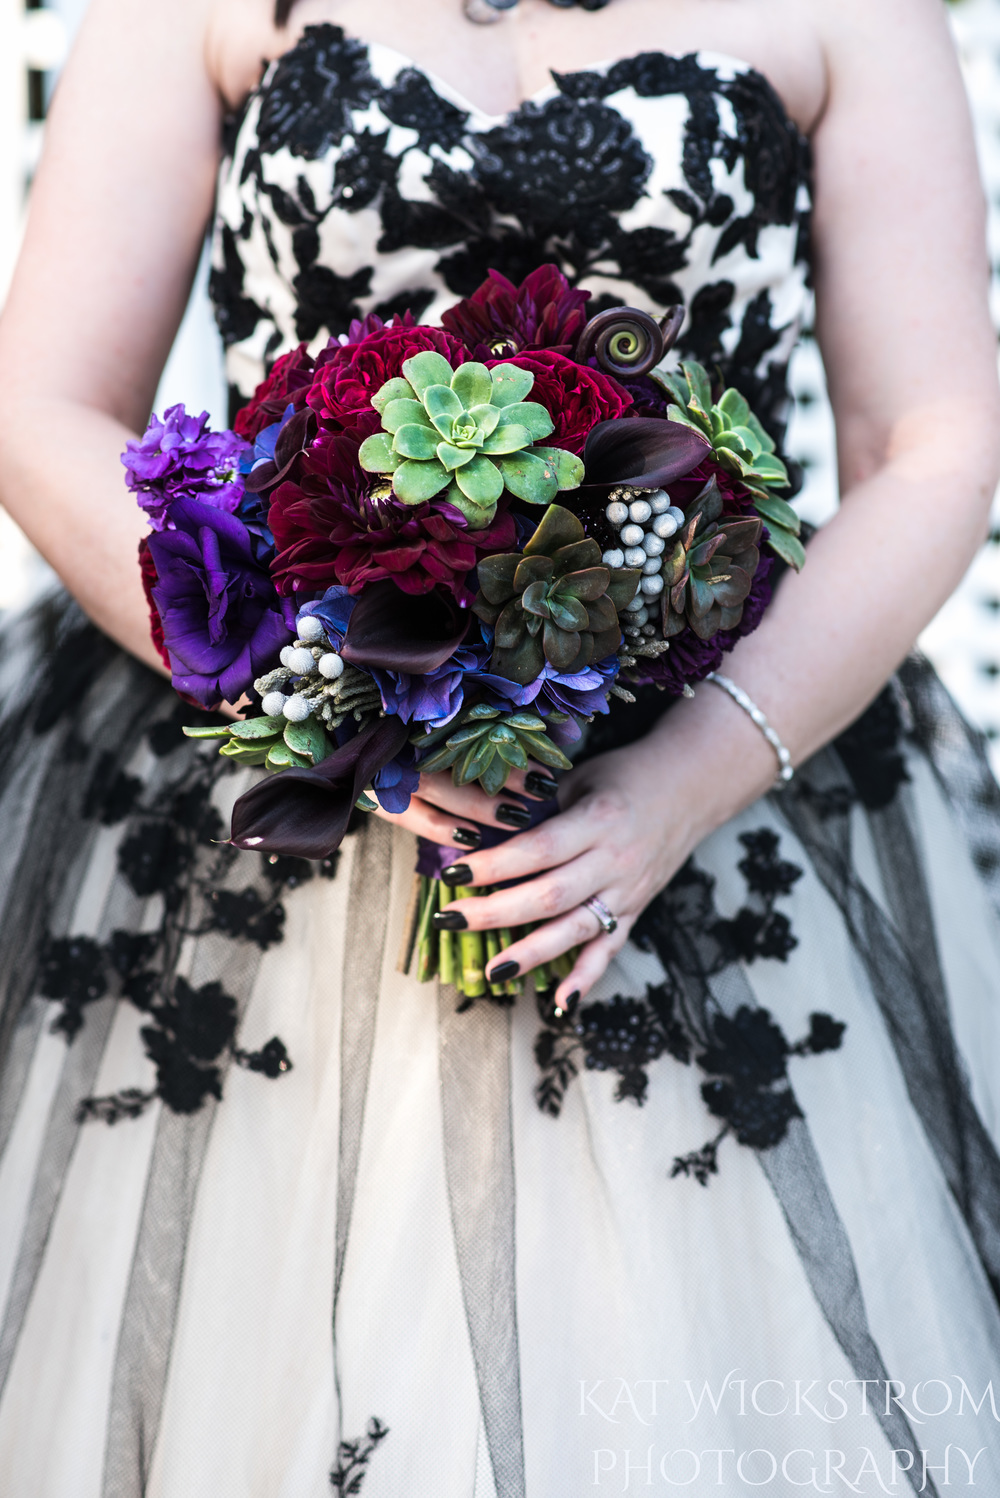 The bridal bouquet had succulents and dark purple flowers. They went perfectly with her black nails and dark theme.